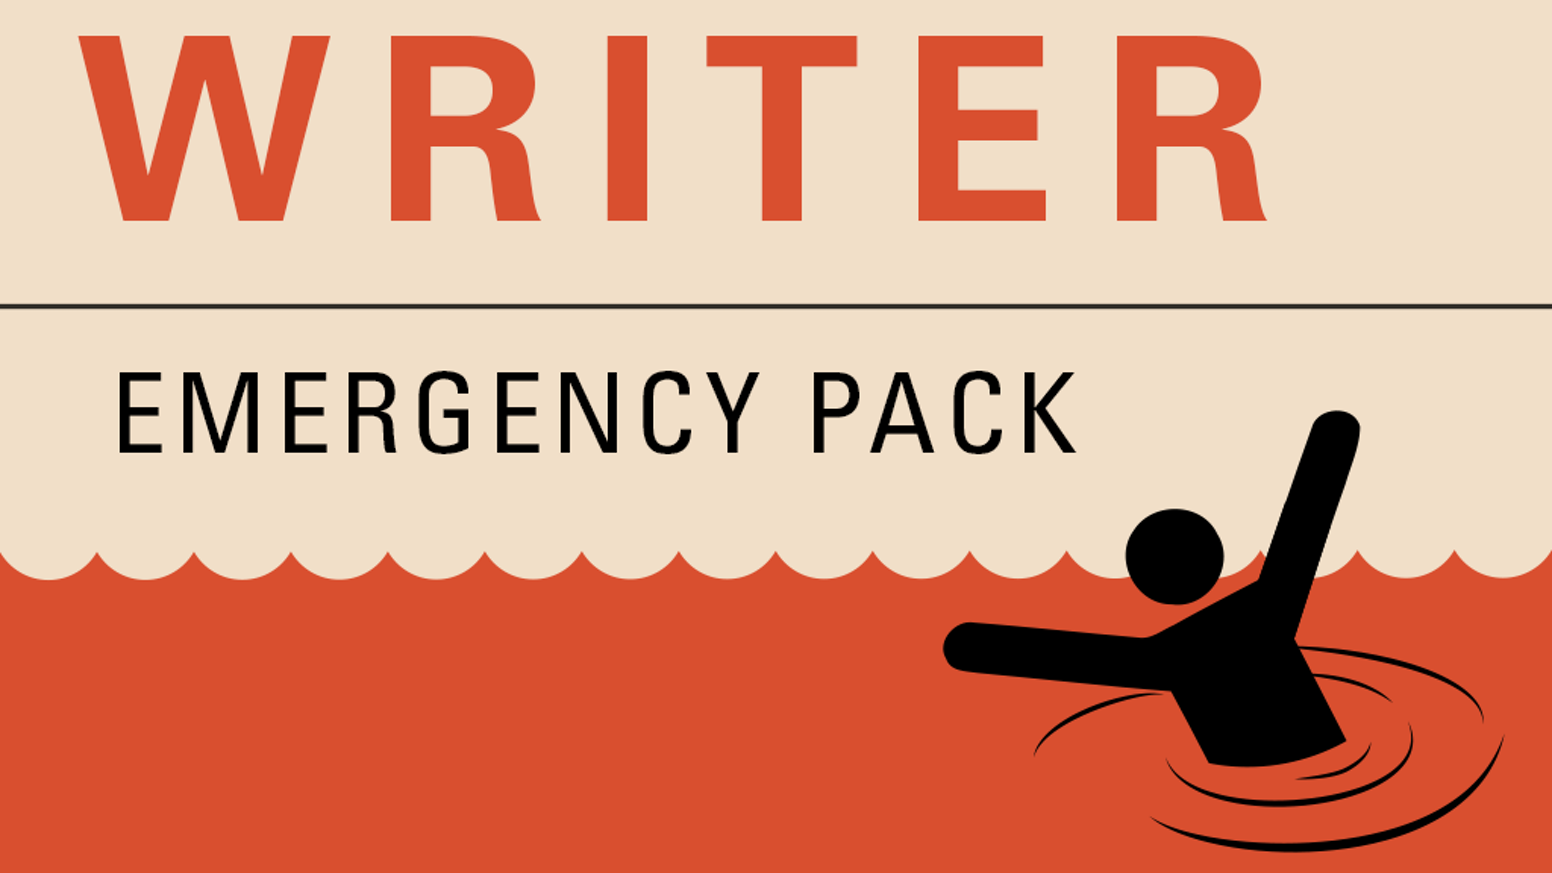 Writer Emergency Pack is a deck full of useful ideas to help get your story back on track.